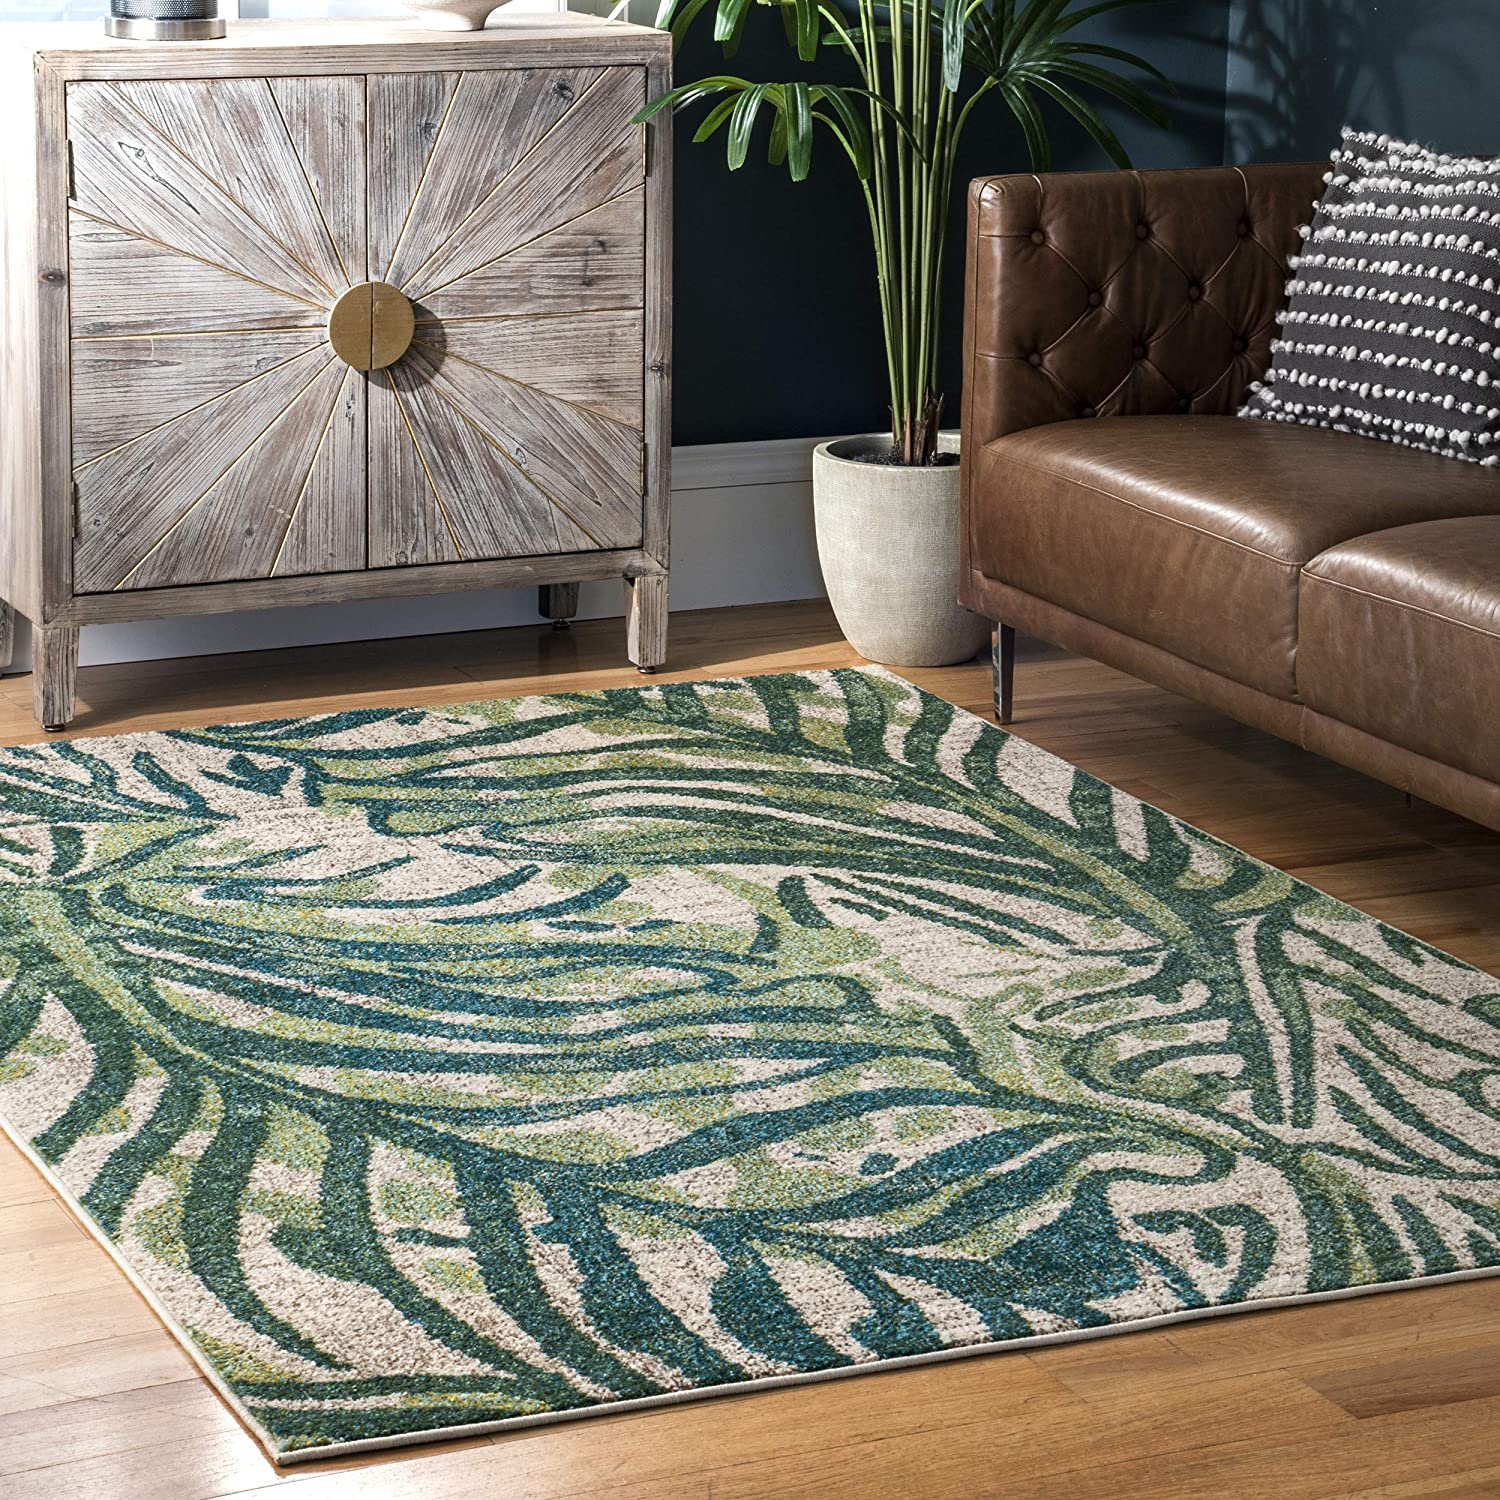 Amazon Com Nuloom Cali Abstract Leaves Runner Rug 2 X 6 Green Furniture Decor